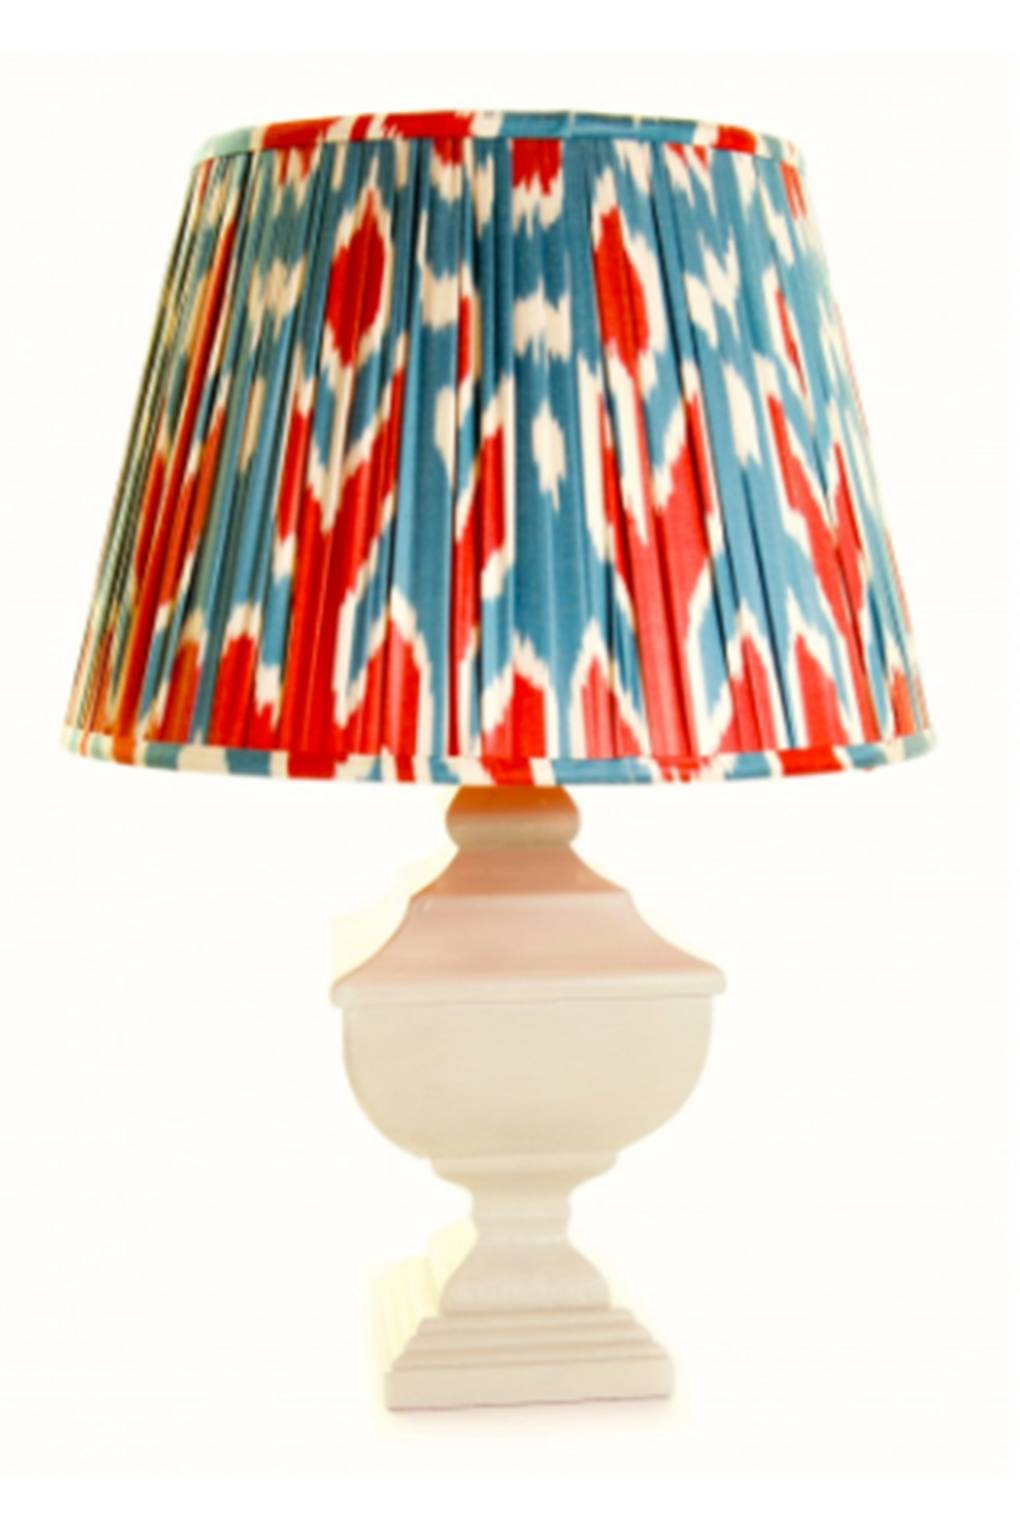 20 Best Pleated Lampshades | Interiors | House & Garden